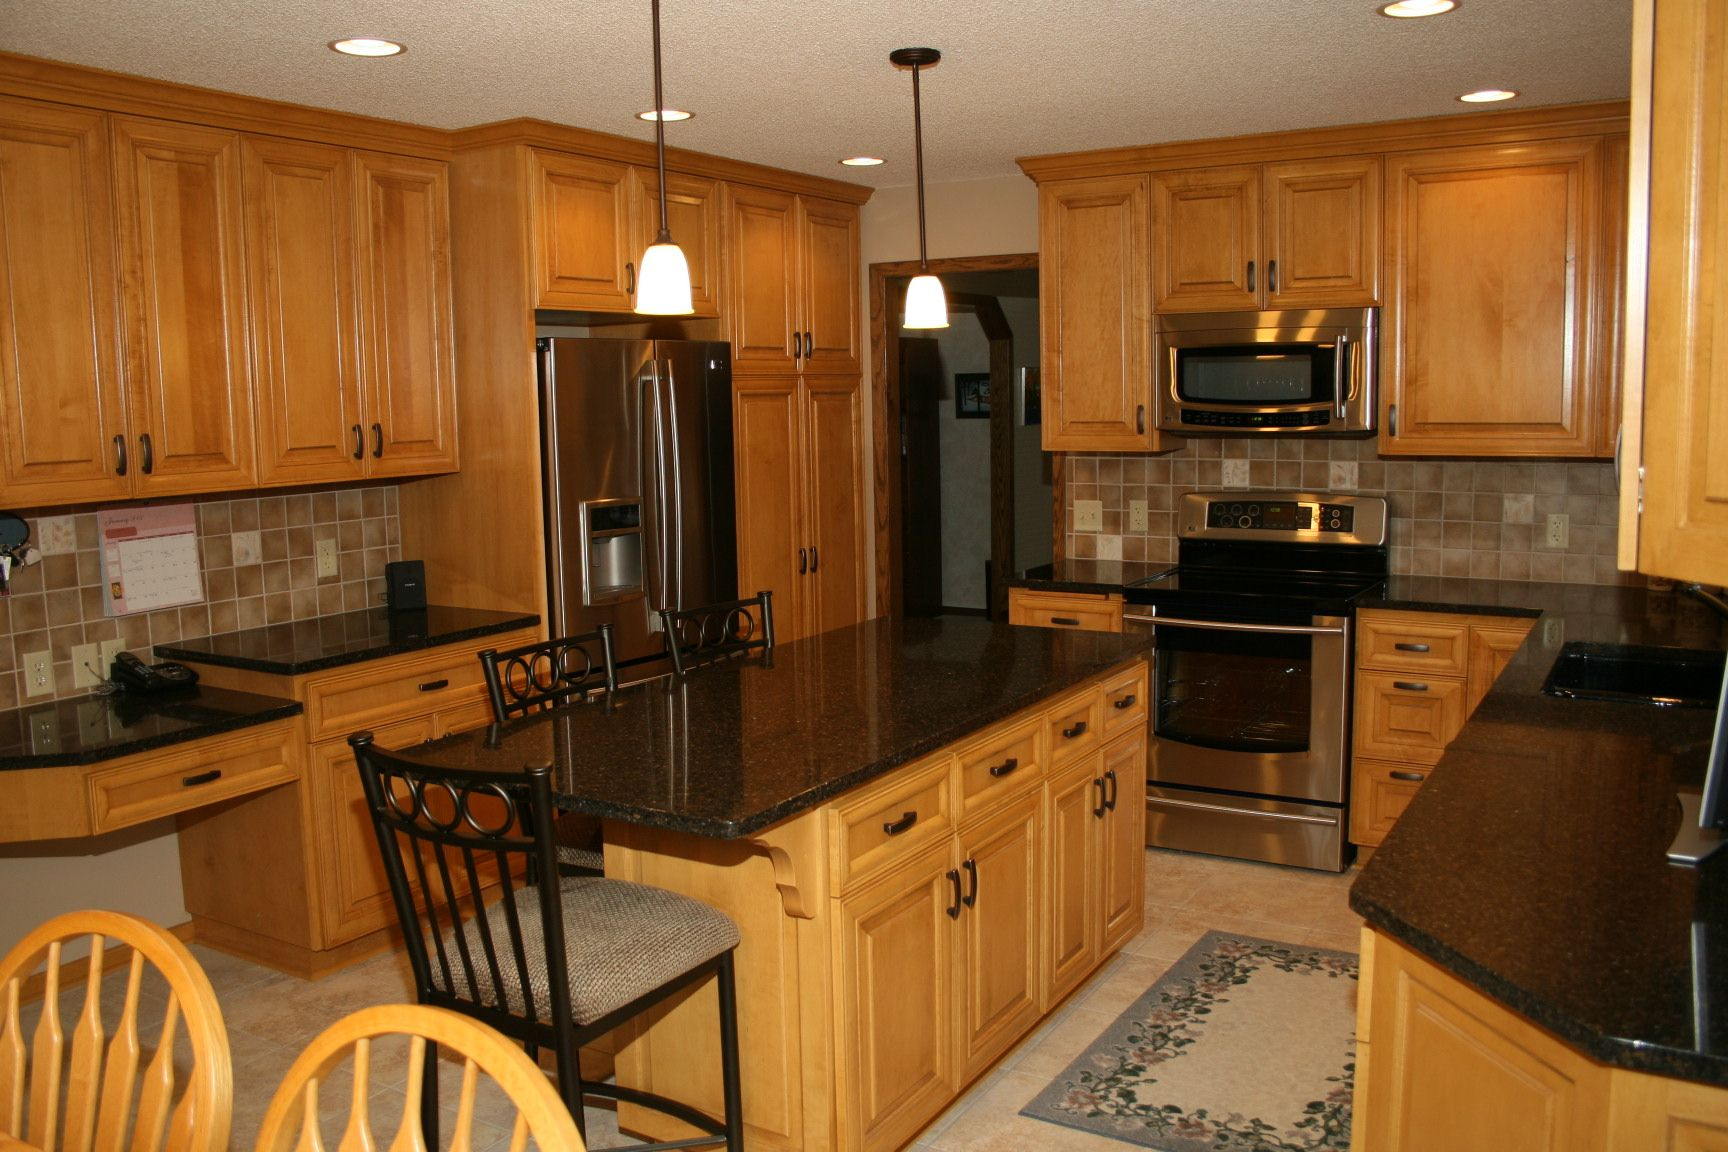 Furniture Wood Kitchen Cabinets Are A Great Option L Shaped Light Wood Kitchen Cabinet With Black Grani Maple Kitchen Cabinets Oak Kitchen Honey Oak Cabinets